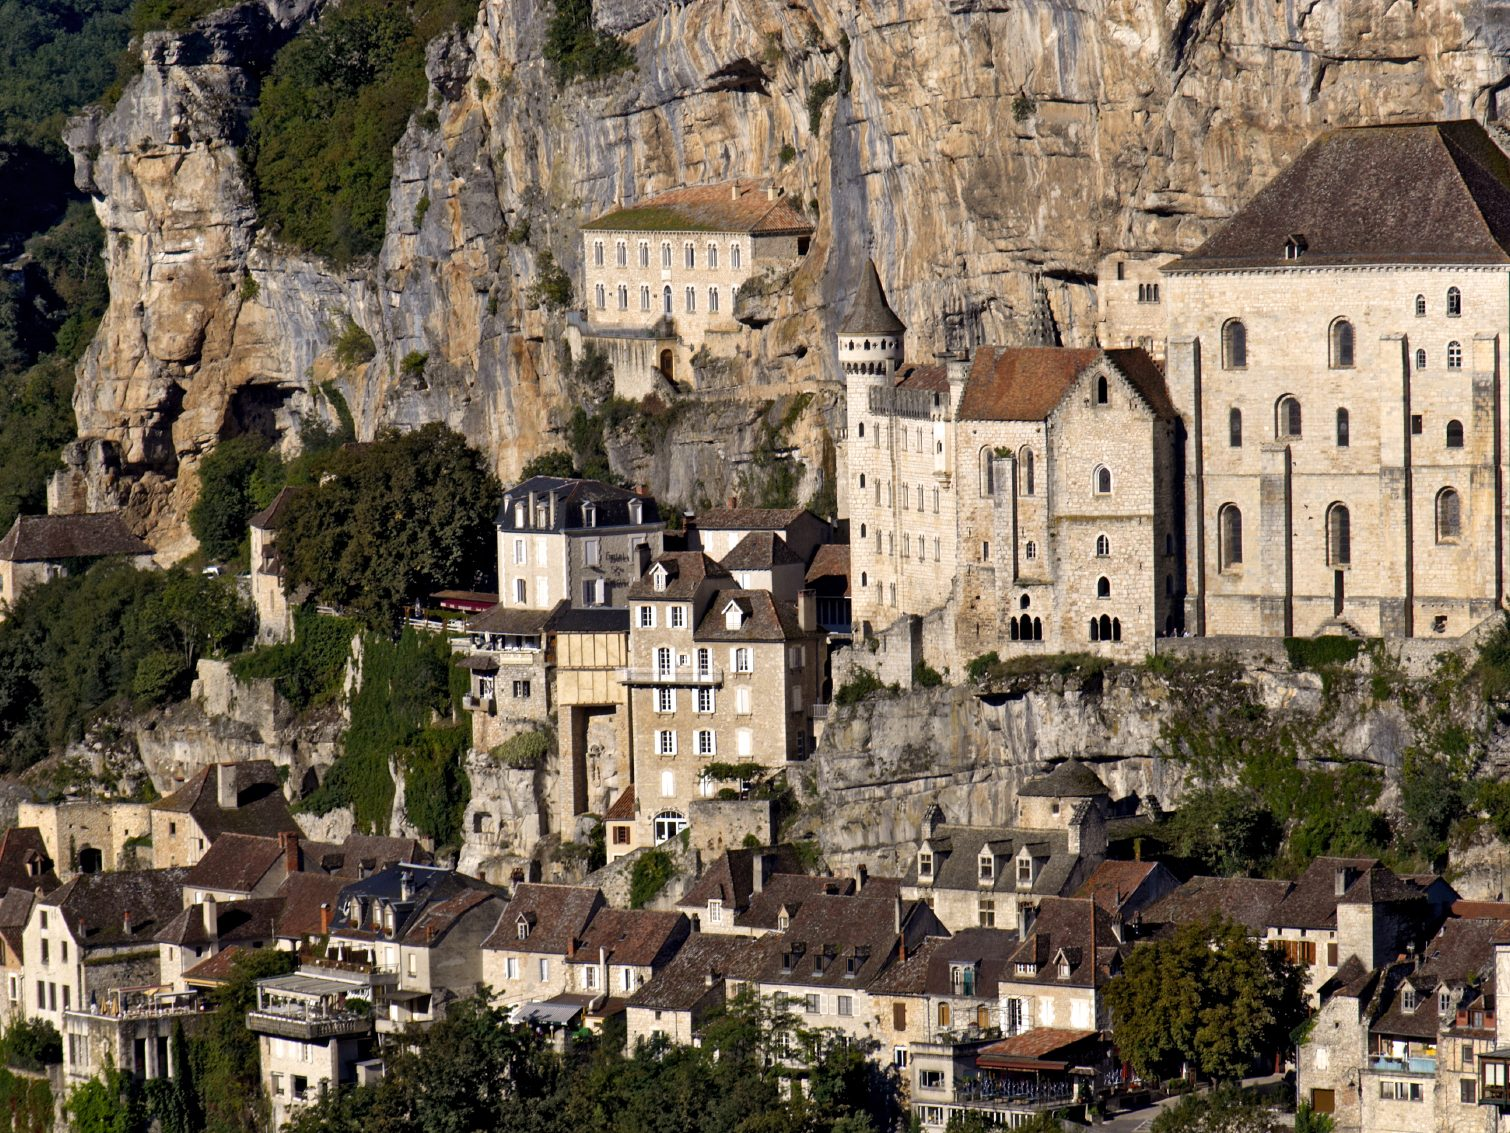 8. Rocamadour, France